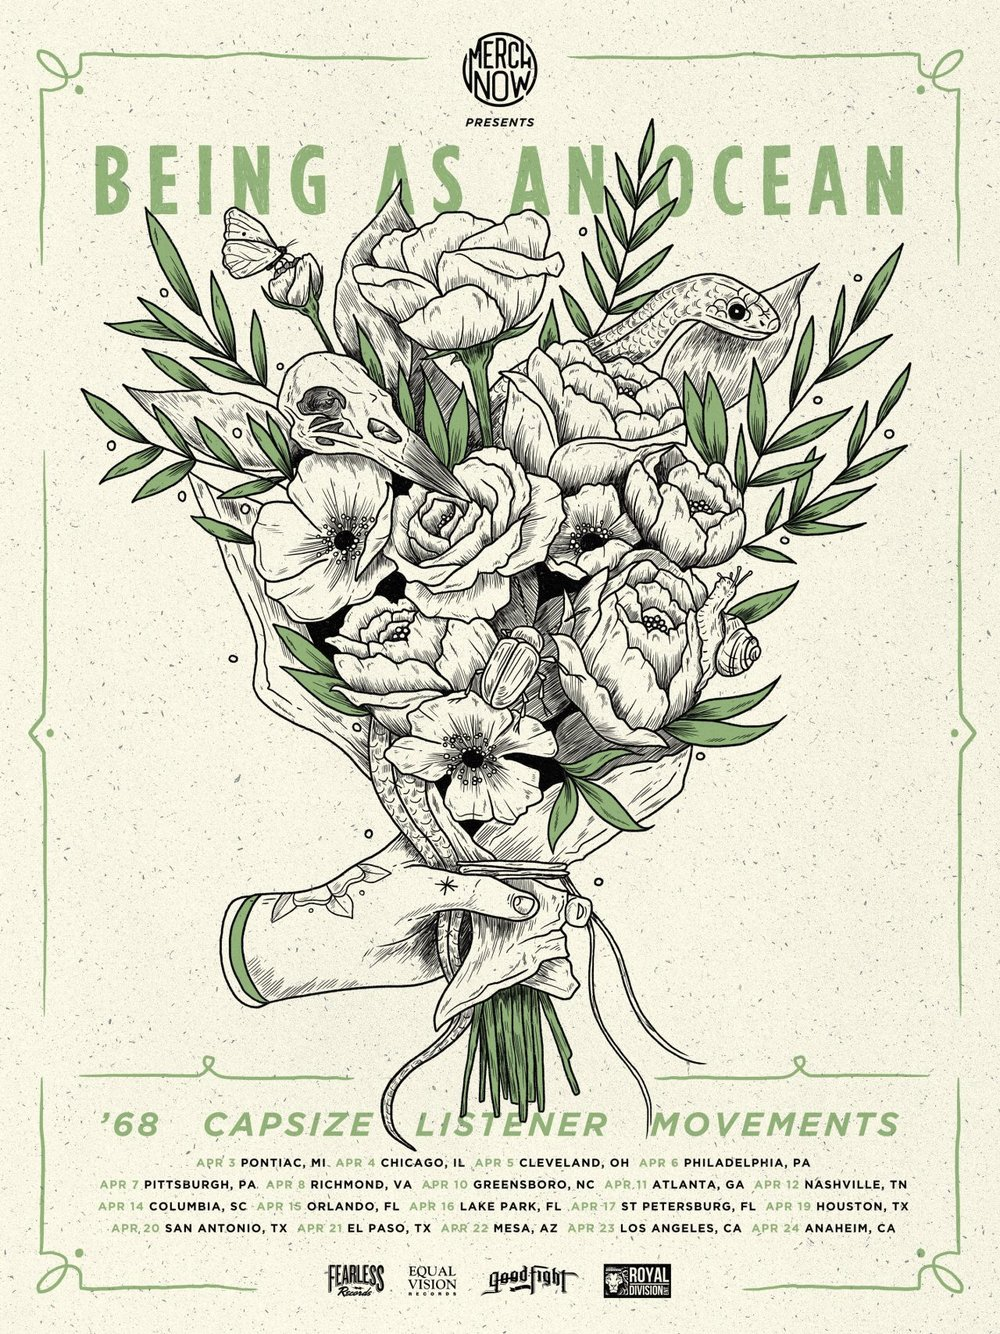 We will be out on tour in April 2016 with @beingasanocean @theyare68@capsizeband@movementsofficial. Below are the dates with these rad bands. We will be adding more show stops before and after this tour in the coming weeks! Tickets are on sale now. See you soon!  April 03 - Pontiac, MI (The Pike Room) April 04 - Chicago, IL (Beat Kitchen) April 05 - Lakewood, OH (Mahall's) April 06 - Philadelphia, PA (The Voltage Lounge) April 07 - Pittsburgh, PA (The Altar Bar) April 08 - Richmond, VA (Canal Club) April 10 - Greensboro, NC (Arizona Petes) April 11 - Atlanta, GA (The Masquerade) April 12 - Nashville, TN (Rocketown) April 14 - Columbia, SC (New Brookland Tavern) April 15 - Orlando, FL (Backbooth) April 16 - Lake Park, FL (Kelsey Theater) April 17 - St Petersburg, FL (Local 662) April 19 - Houston, TX (Warehouse Live) April 20 - San Antonio, TX (The Korova) April 22 - Mesa, AZ (The Underground) April 23 - Van Nuys, CA (White Oak Music Hall) April 24 - Anaheim, CA (Chain Reaction)